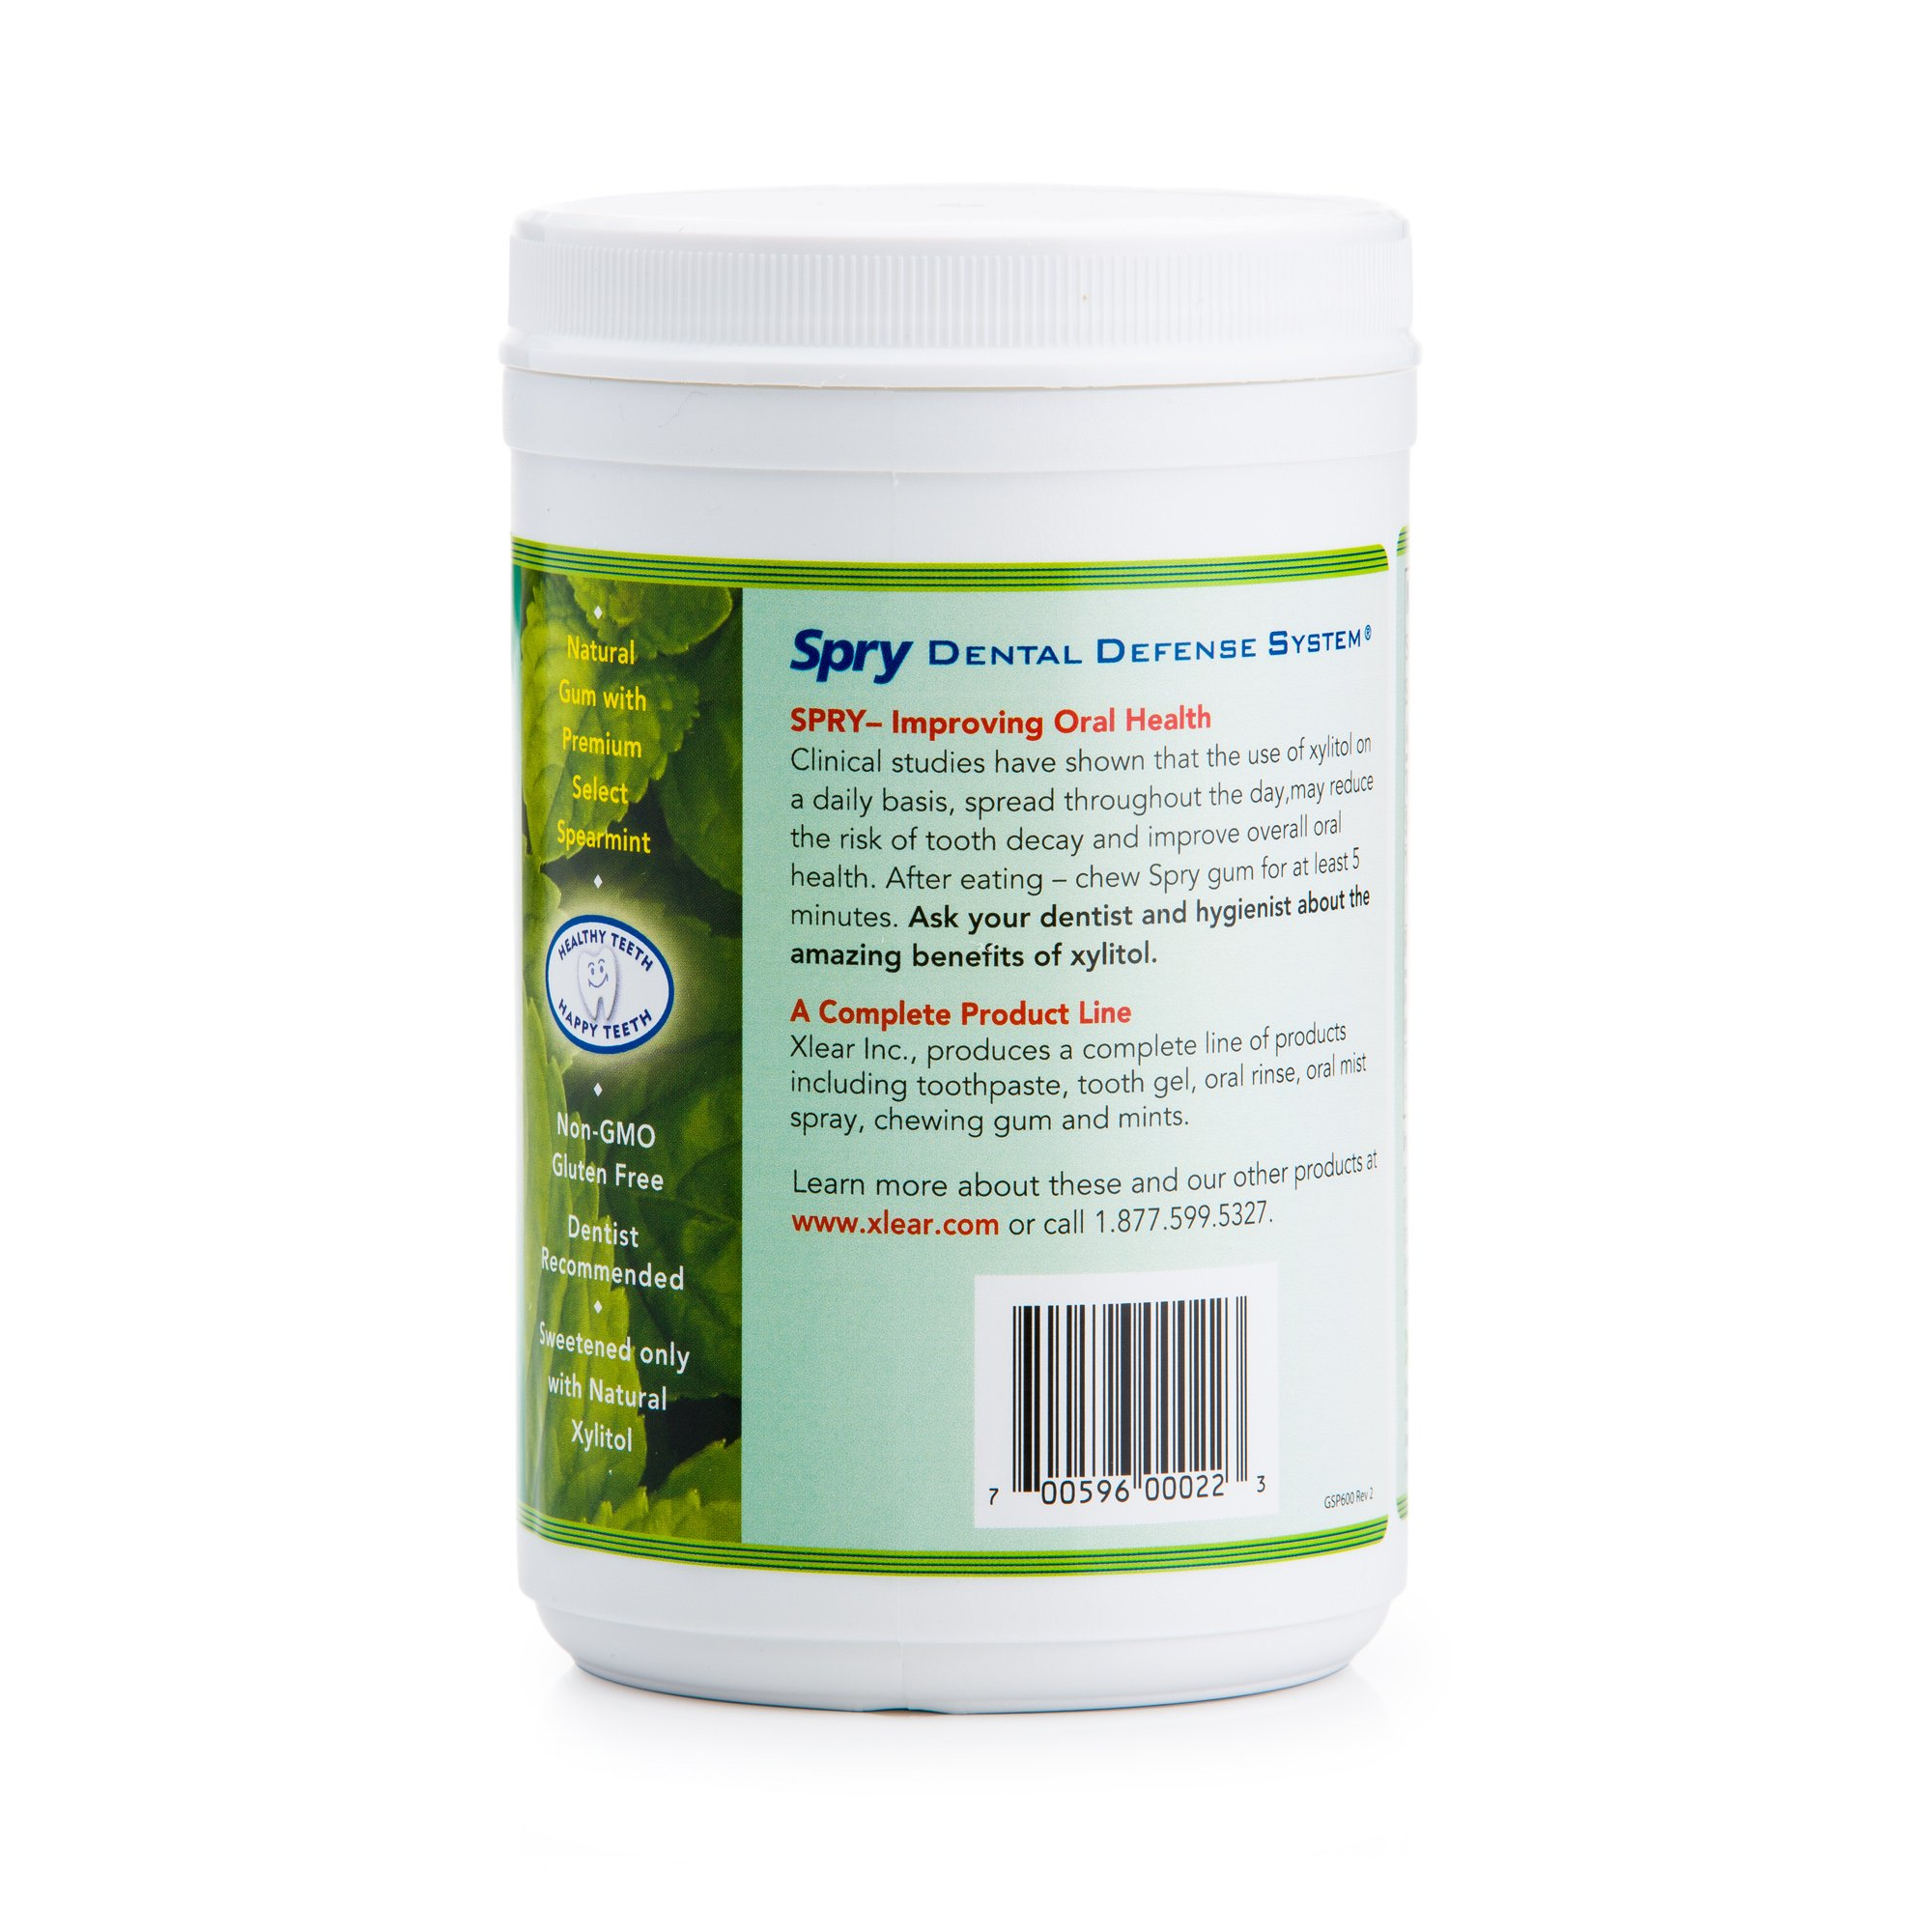 Spry 600ct Spearmint Xylitol Gum 3-PACK SAVINGS!!! by Spry (Image #3)